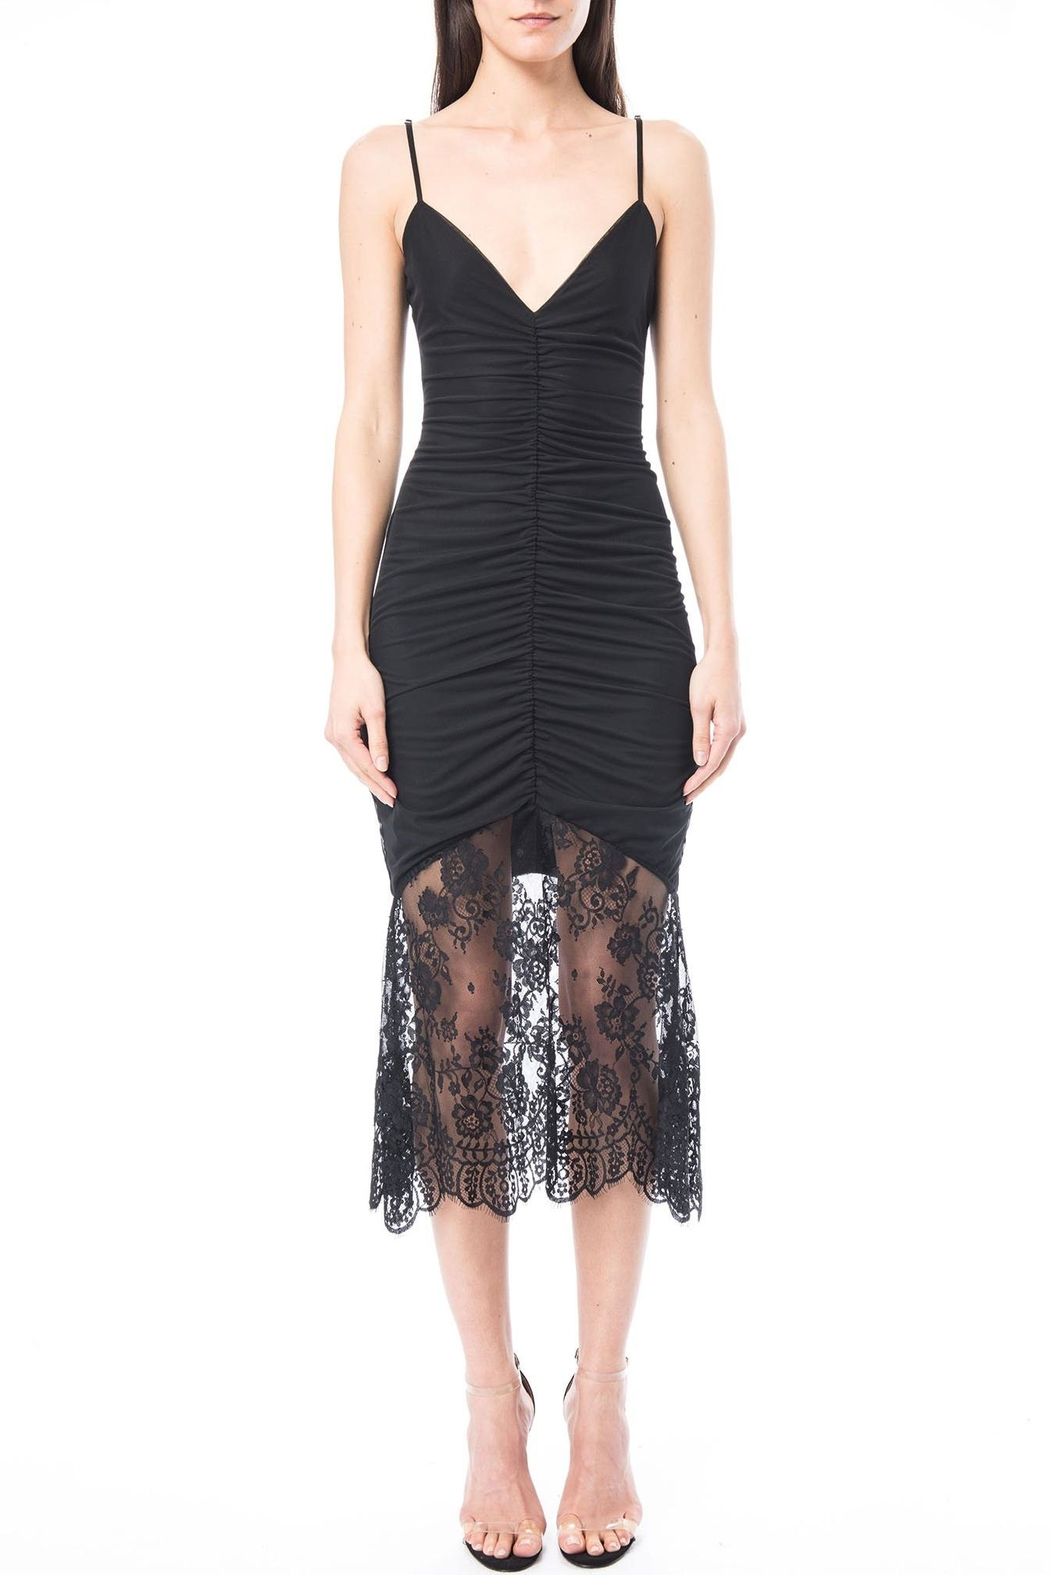 Cami NYC Ohanna Mesh Dress - Front Cropped Image